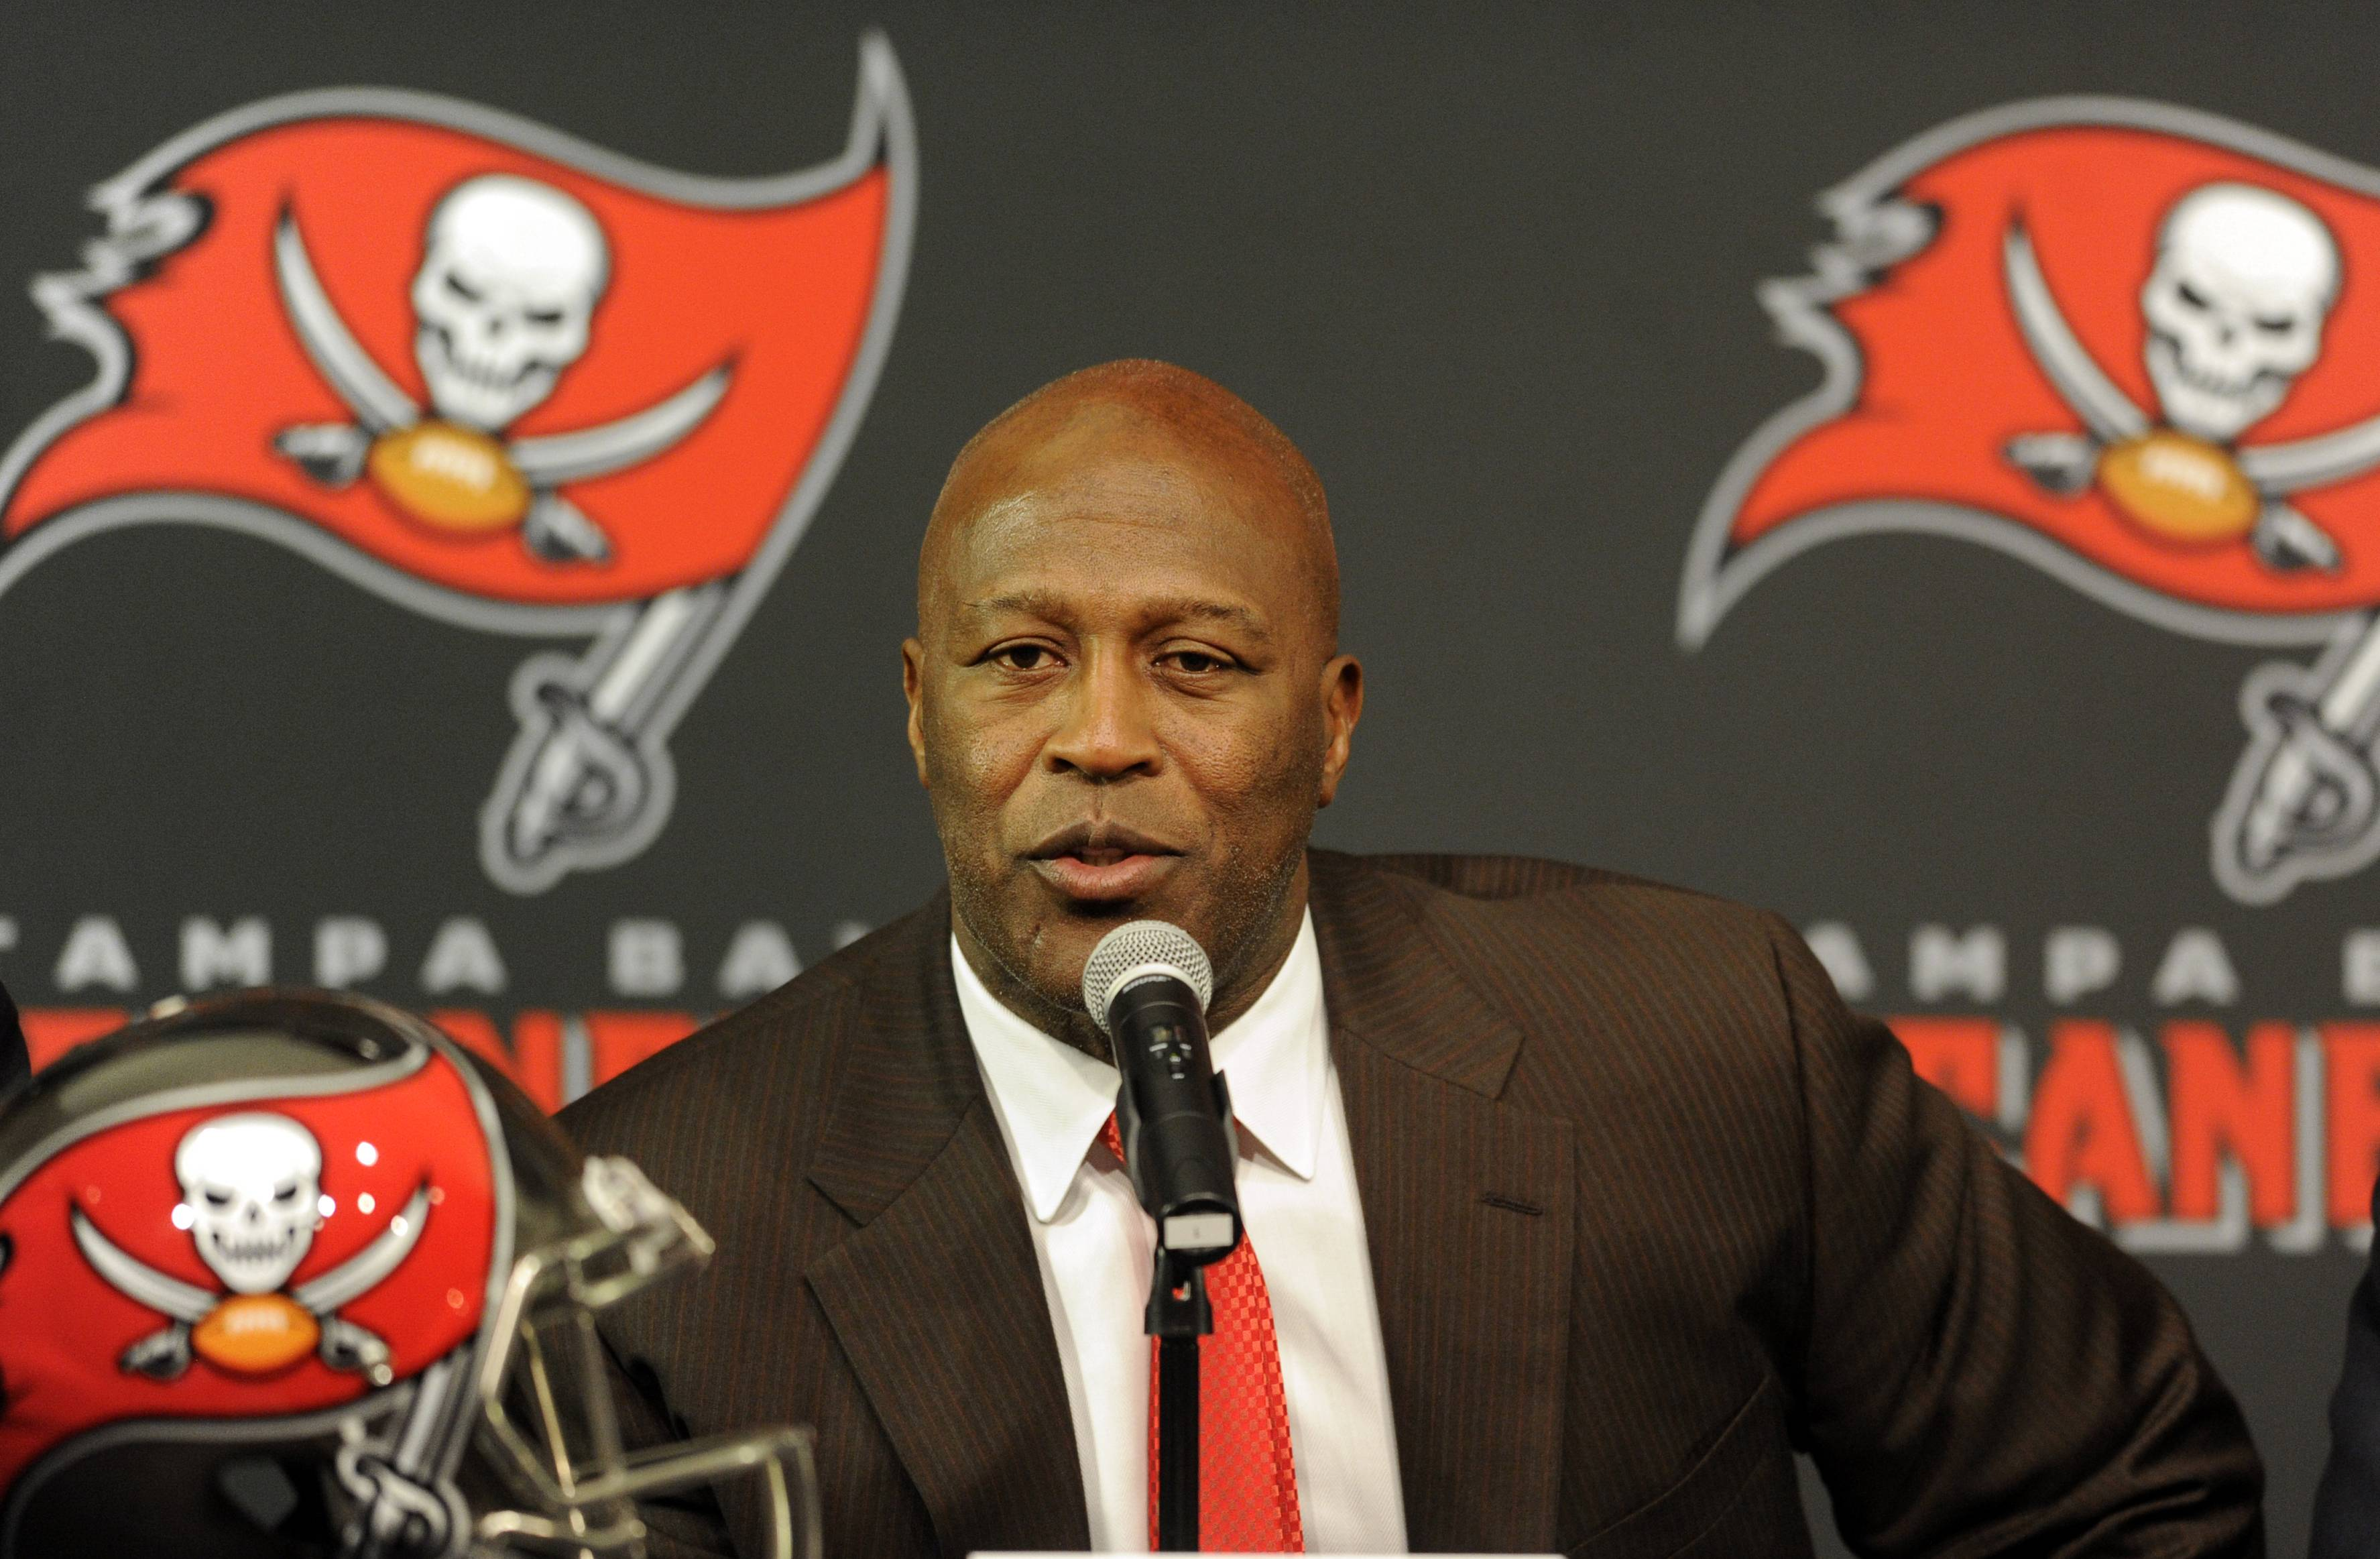 Tampa Bay Buccaneers head coach Lovie Smith was able to convinced Josh McCown to leave the Bears and join his offense.